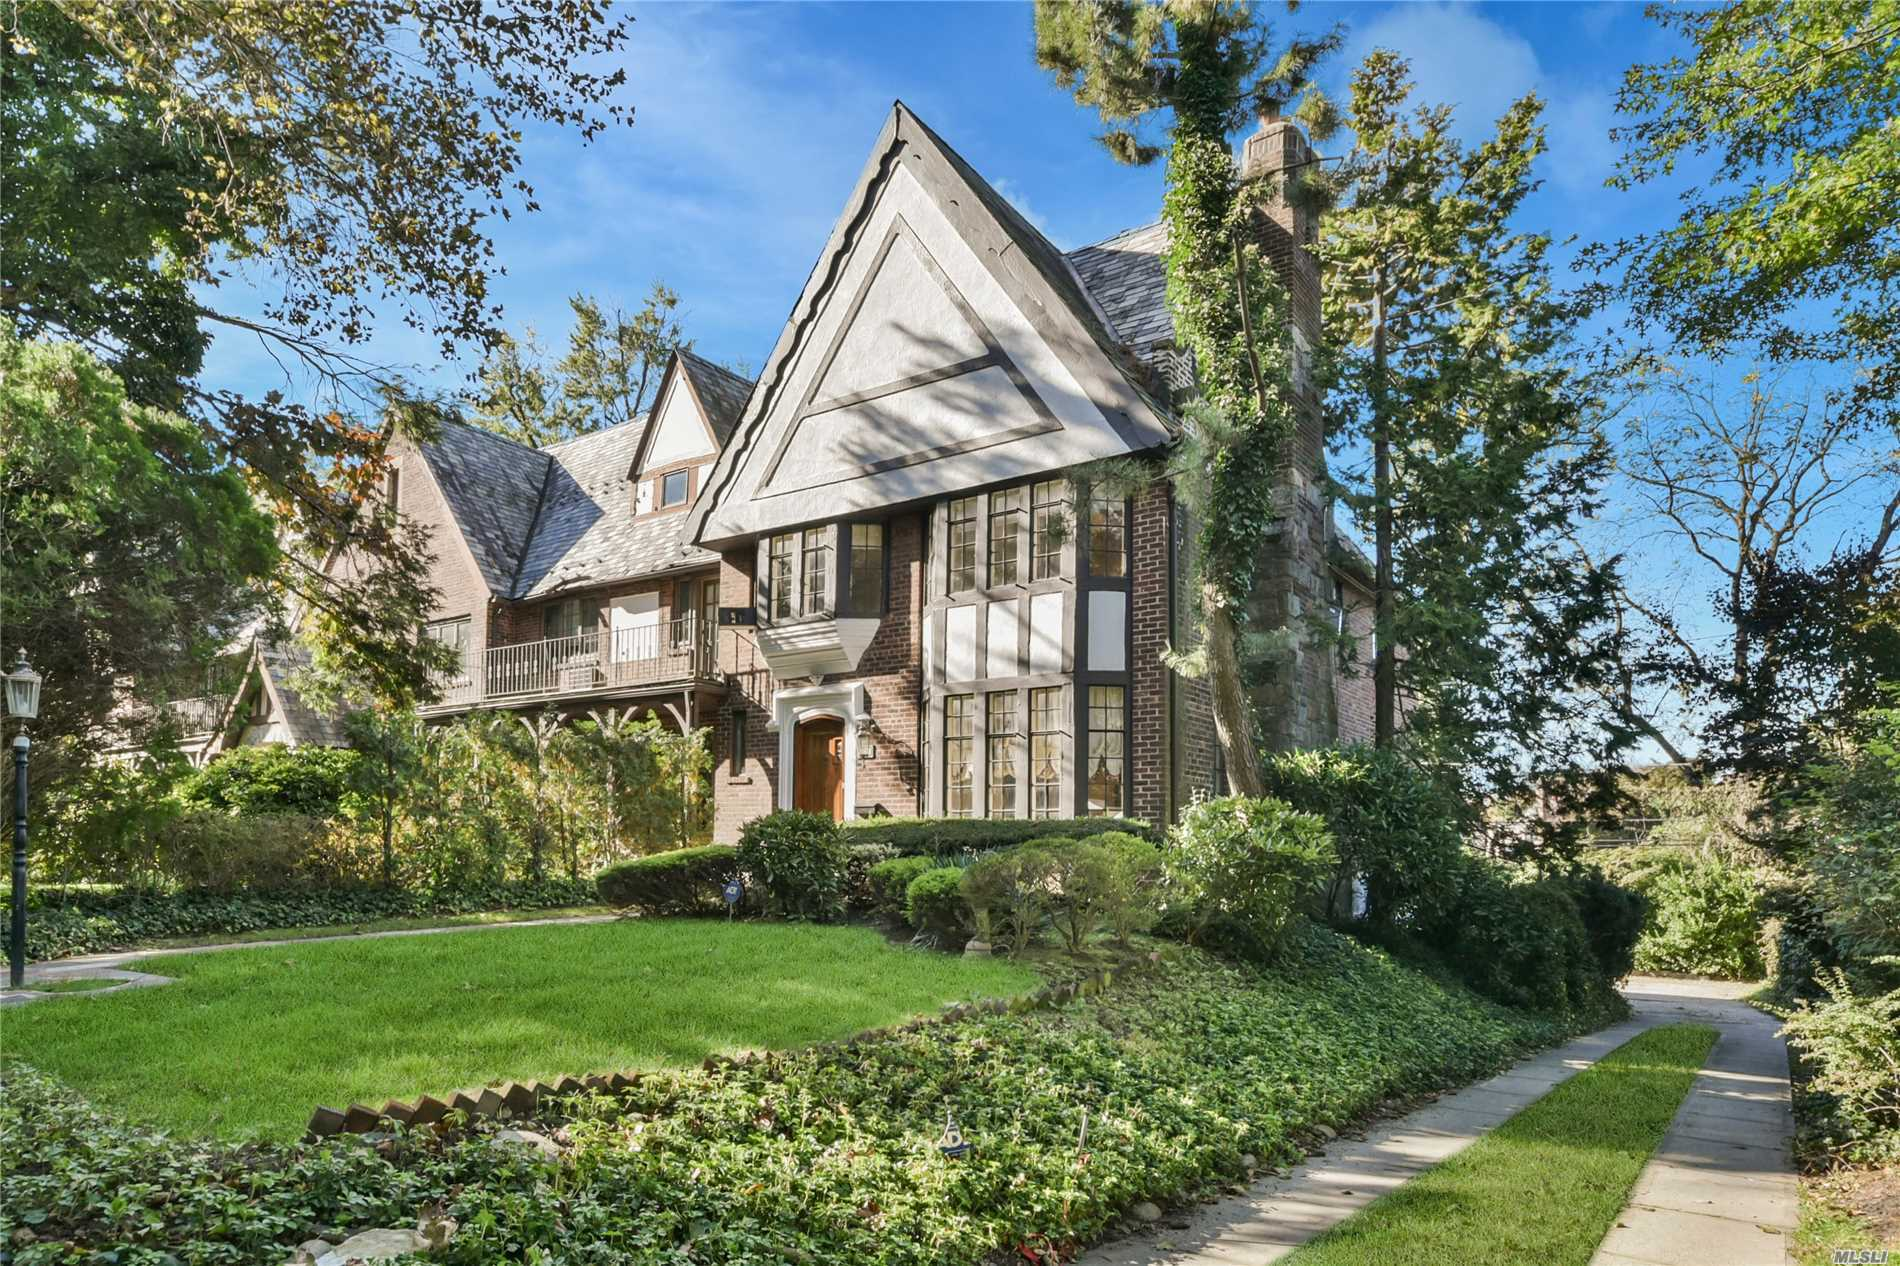 Great Neck. Unique, Gatsby Era, Custom Built, Corner Tudor Town-Home Built In & Around The Mansions Of Great Neck On One Of The Most Desirable Neighborhoods In The Usa! Everything Is Custom From The Hand Laid Oak Pegged Floors To The One Of A Kind Art Deco Bathrooms! The First Floor Layout Flows Like A Mansion. The Custom Wood Floors Accentuate The Dining Room. There Is A Custom Mirrored Living Room With A Marble Fireplace. 4 Bedrooms On The 2nd Floor W/Ample Closets. Walk Out Basement!